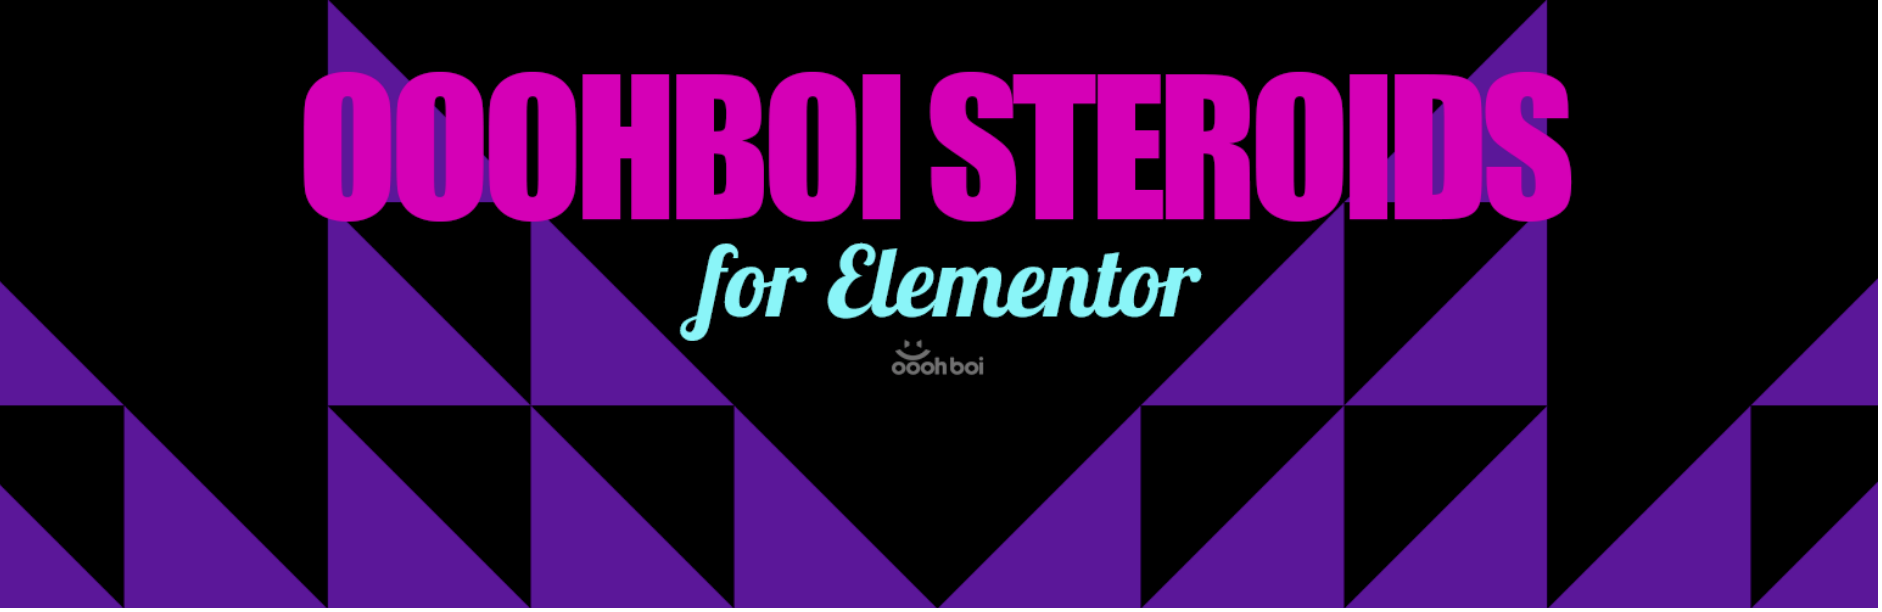 Steroids for Elementor